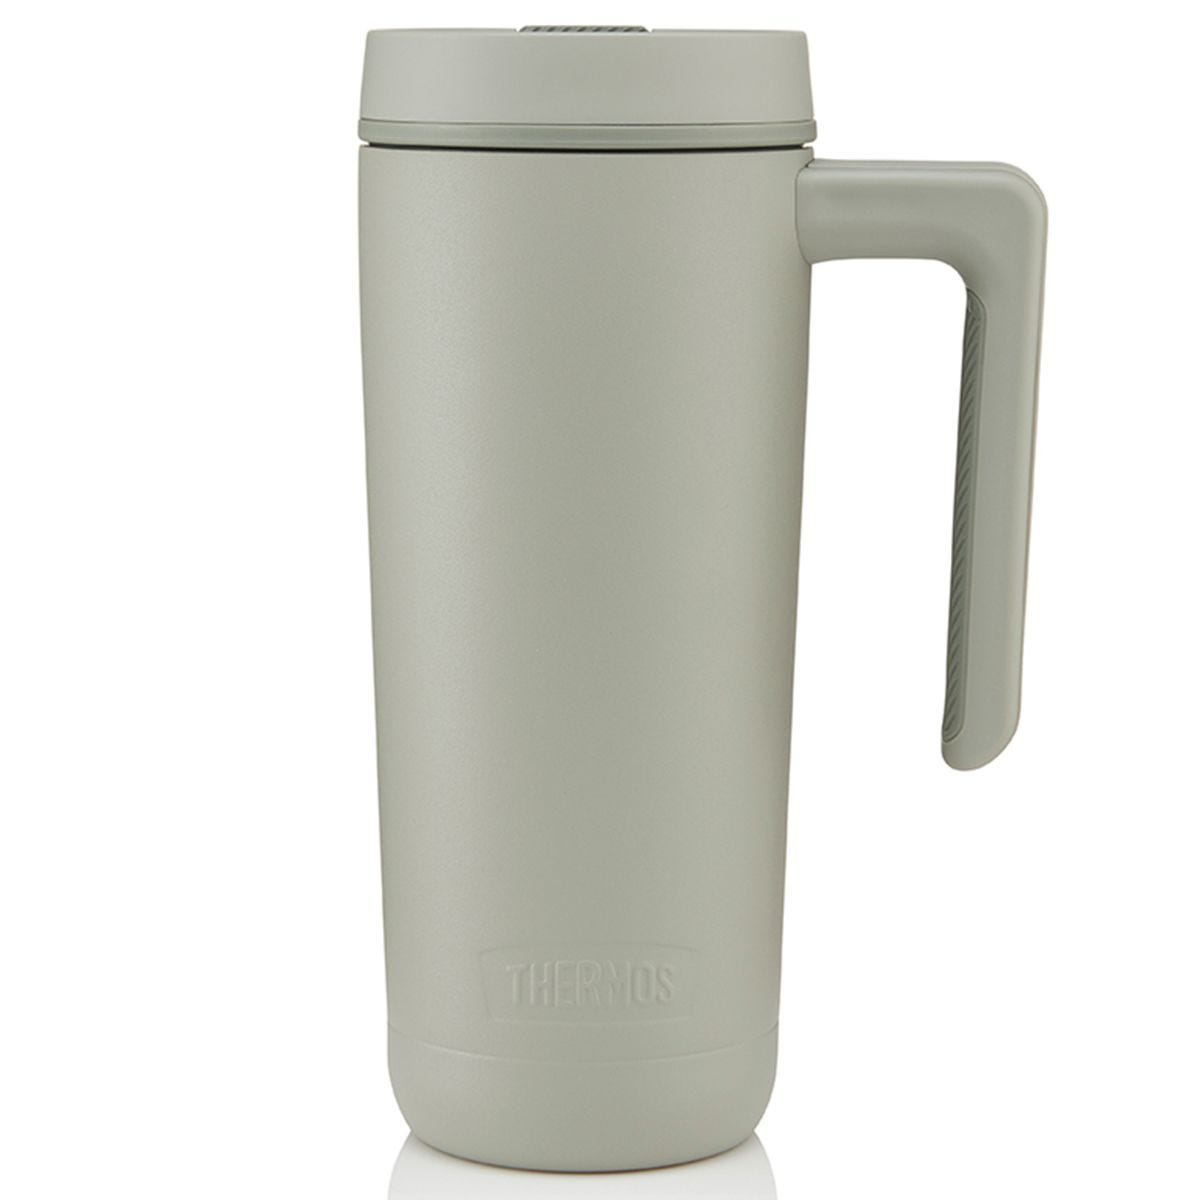 Thermos Guardian Stainless Steel Travel Mug 530ml - Green